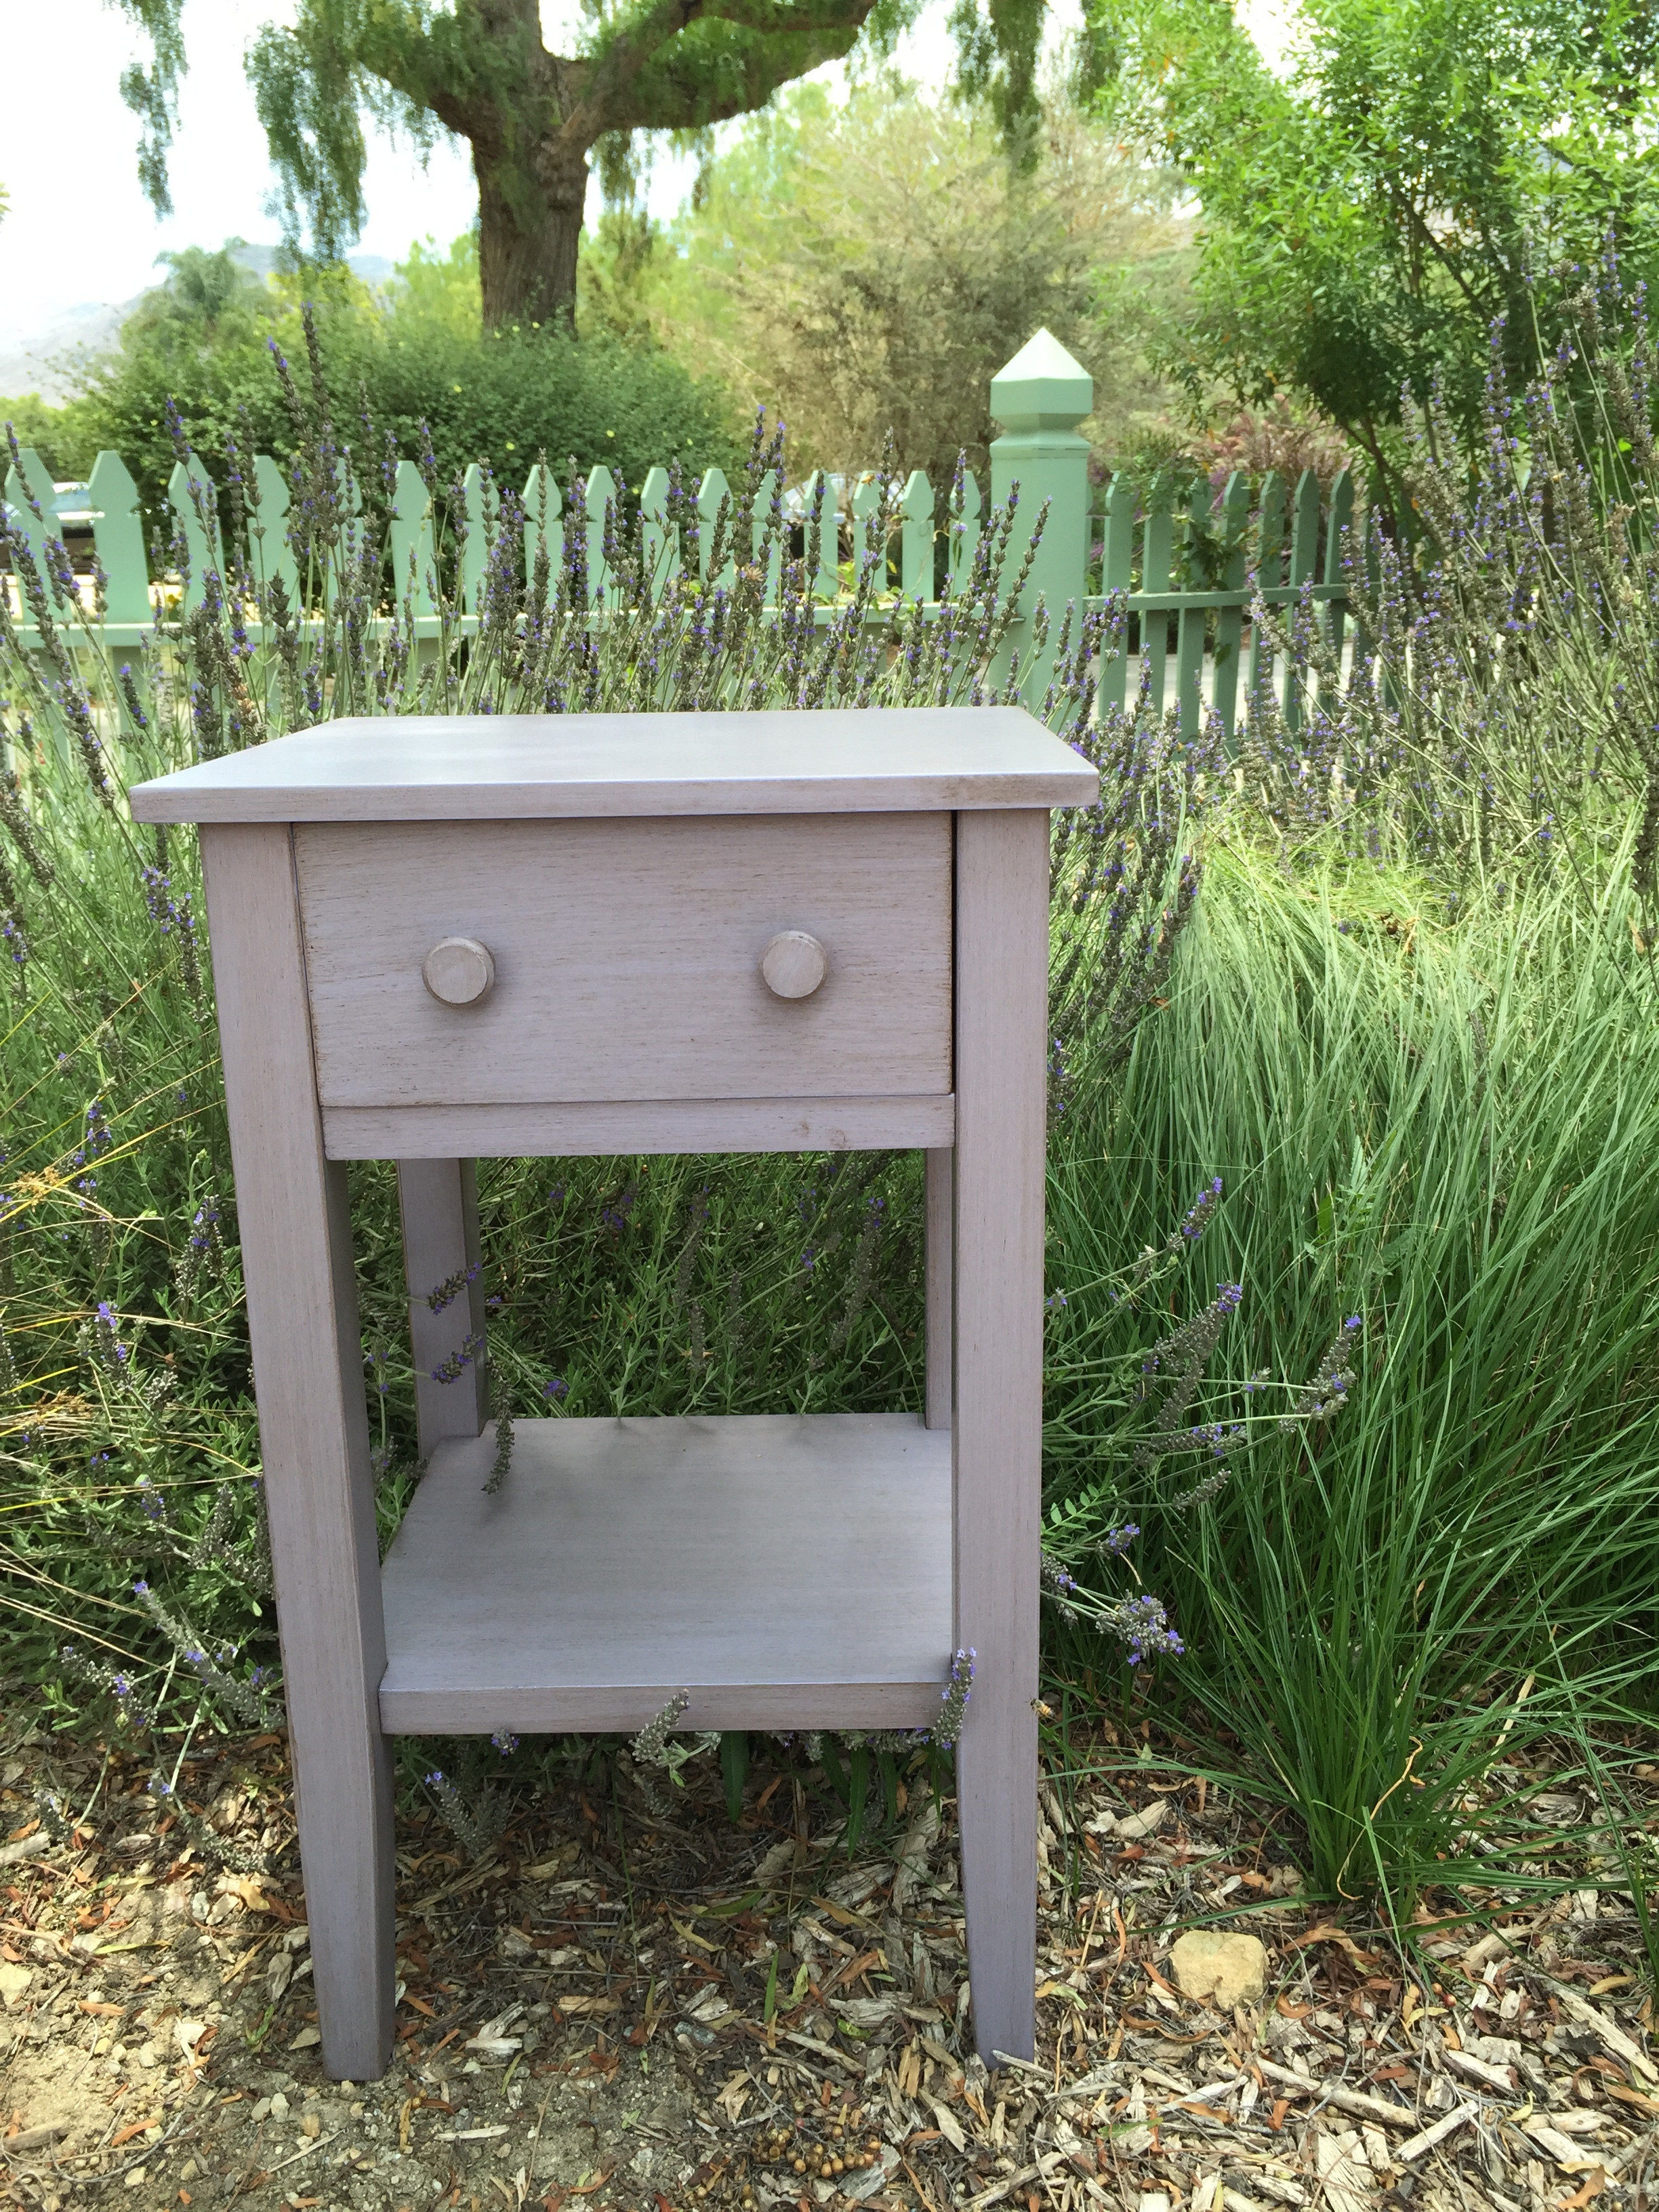 LAVENDAR SIDE TABLE - $20